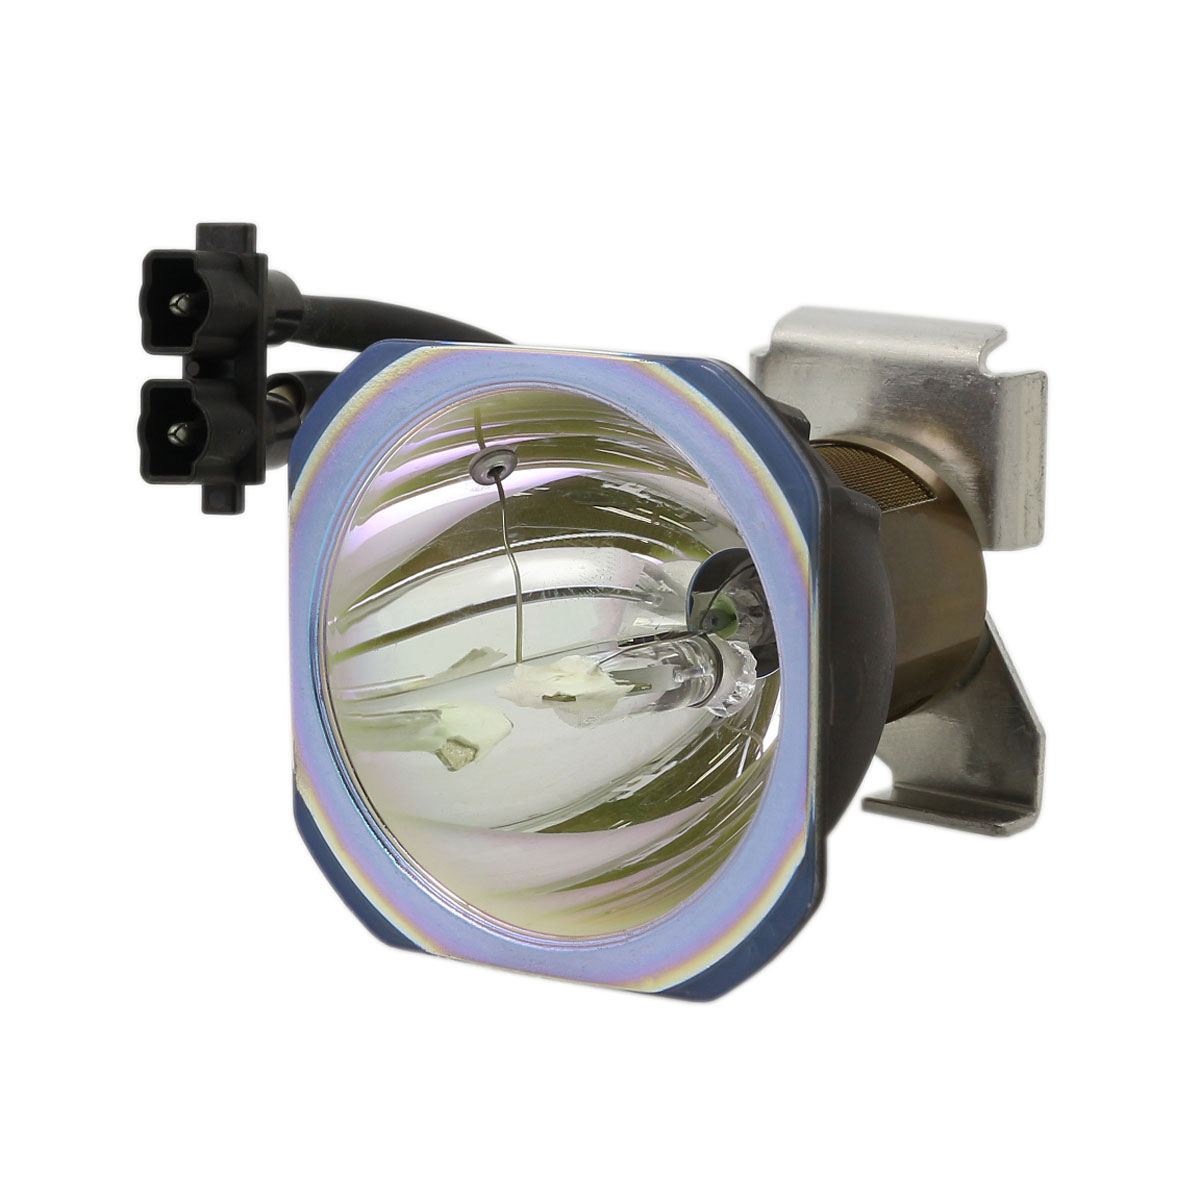 Compatible Bare Bulb AH-35001 AH35001 for EIKI EIP-3500 Projector Lamp Bulb without housing Free Shipping free shipping compatible projector lamp ah 50001 for eiki eip 5000 left eip 5000l left projector